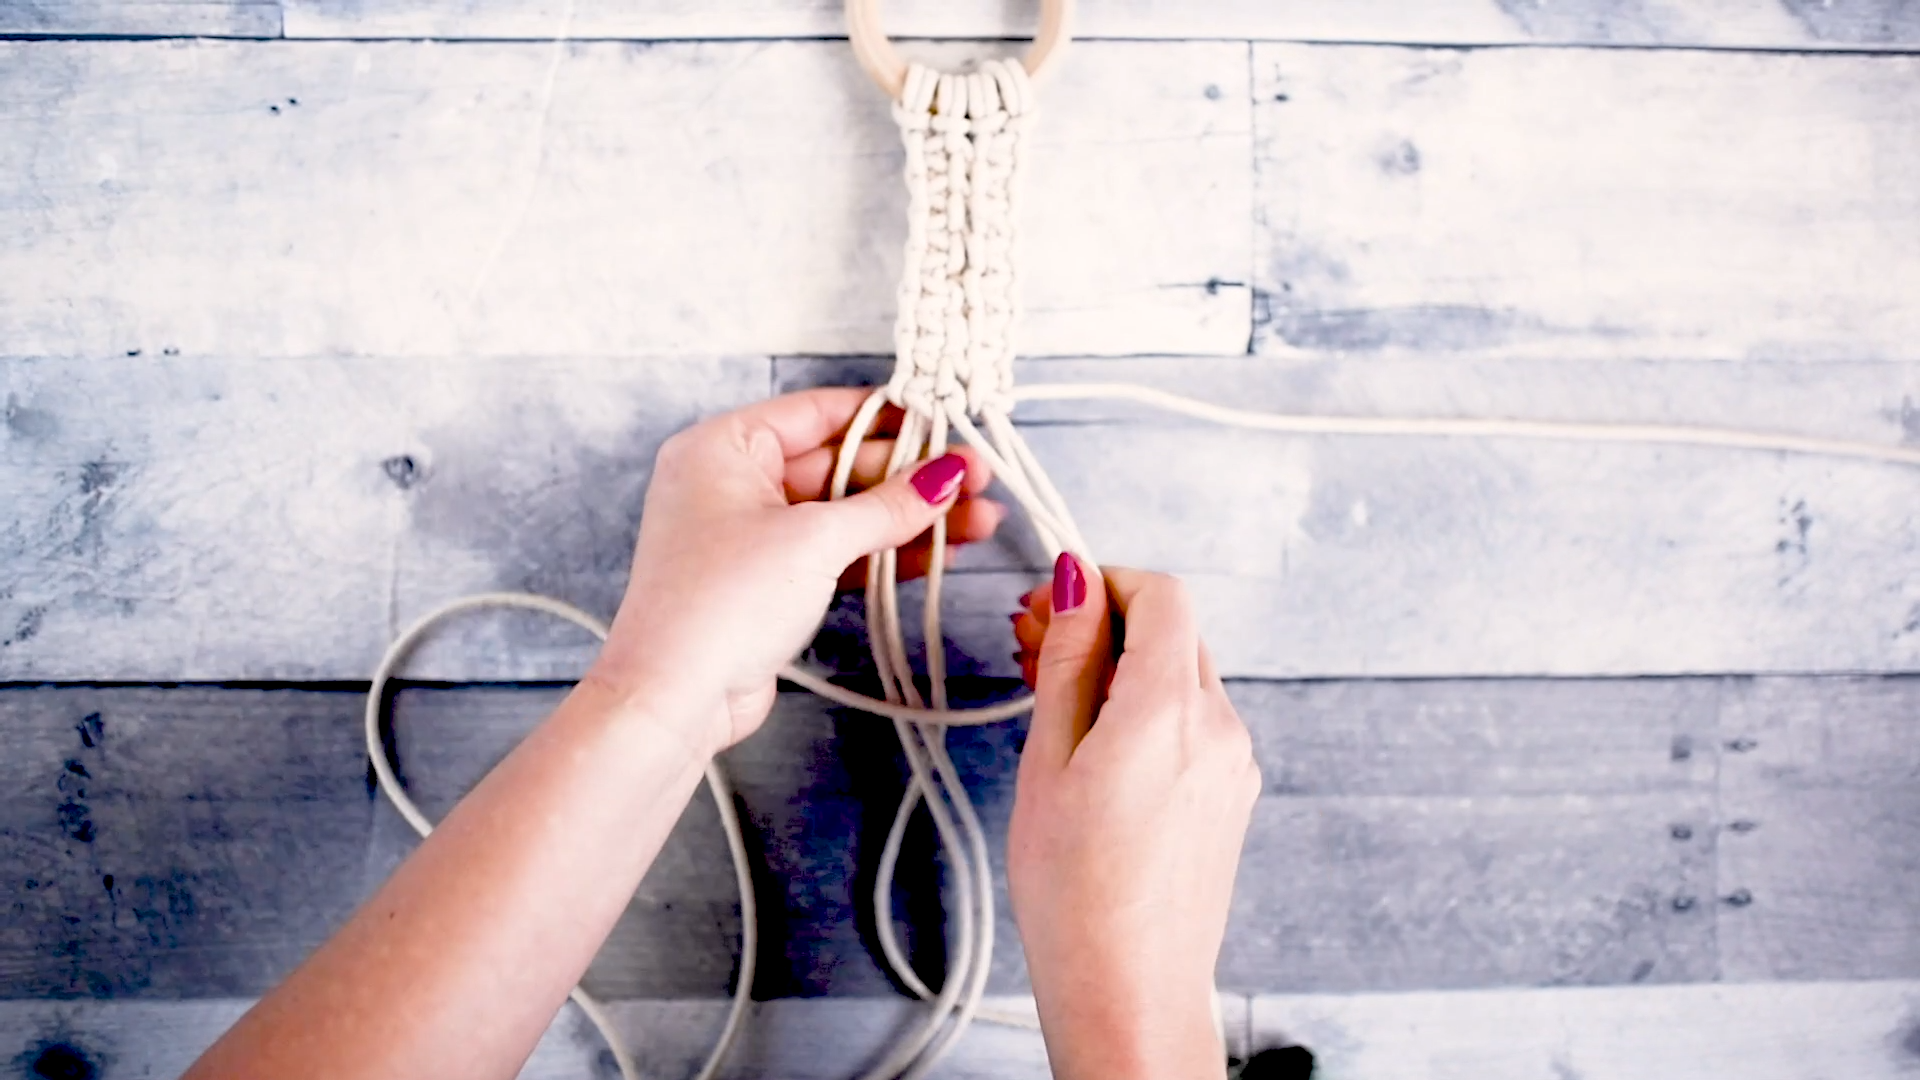 Using a few different classic macrame knots, create your own hanging mirror and plant holder (plus extra macrame cord for another